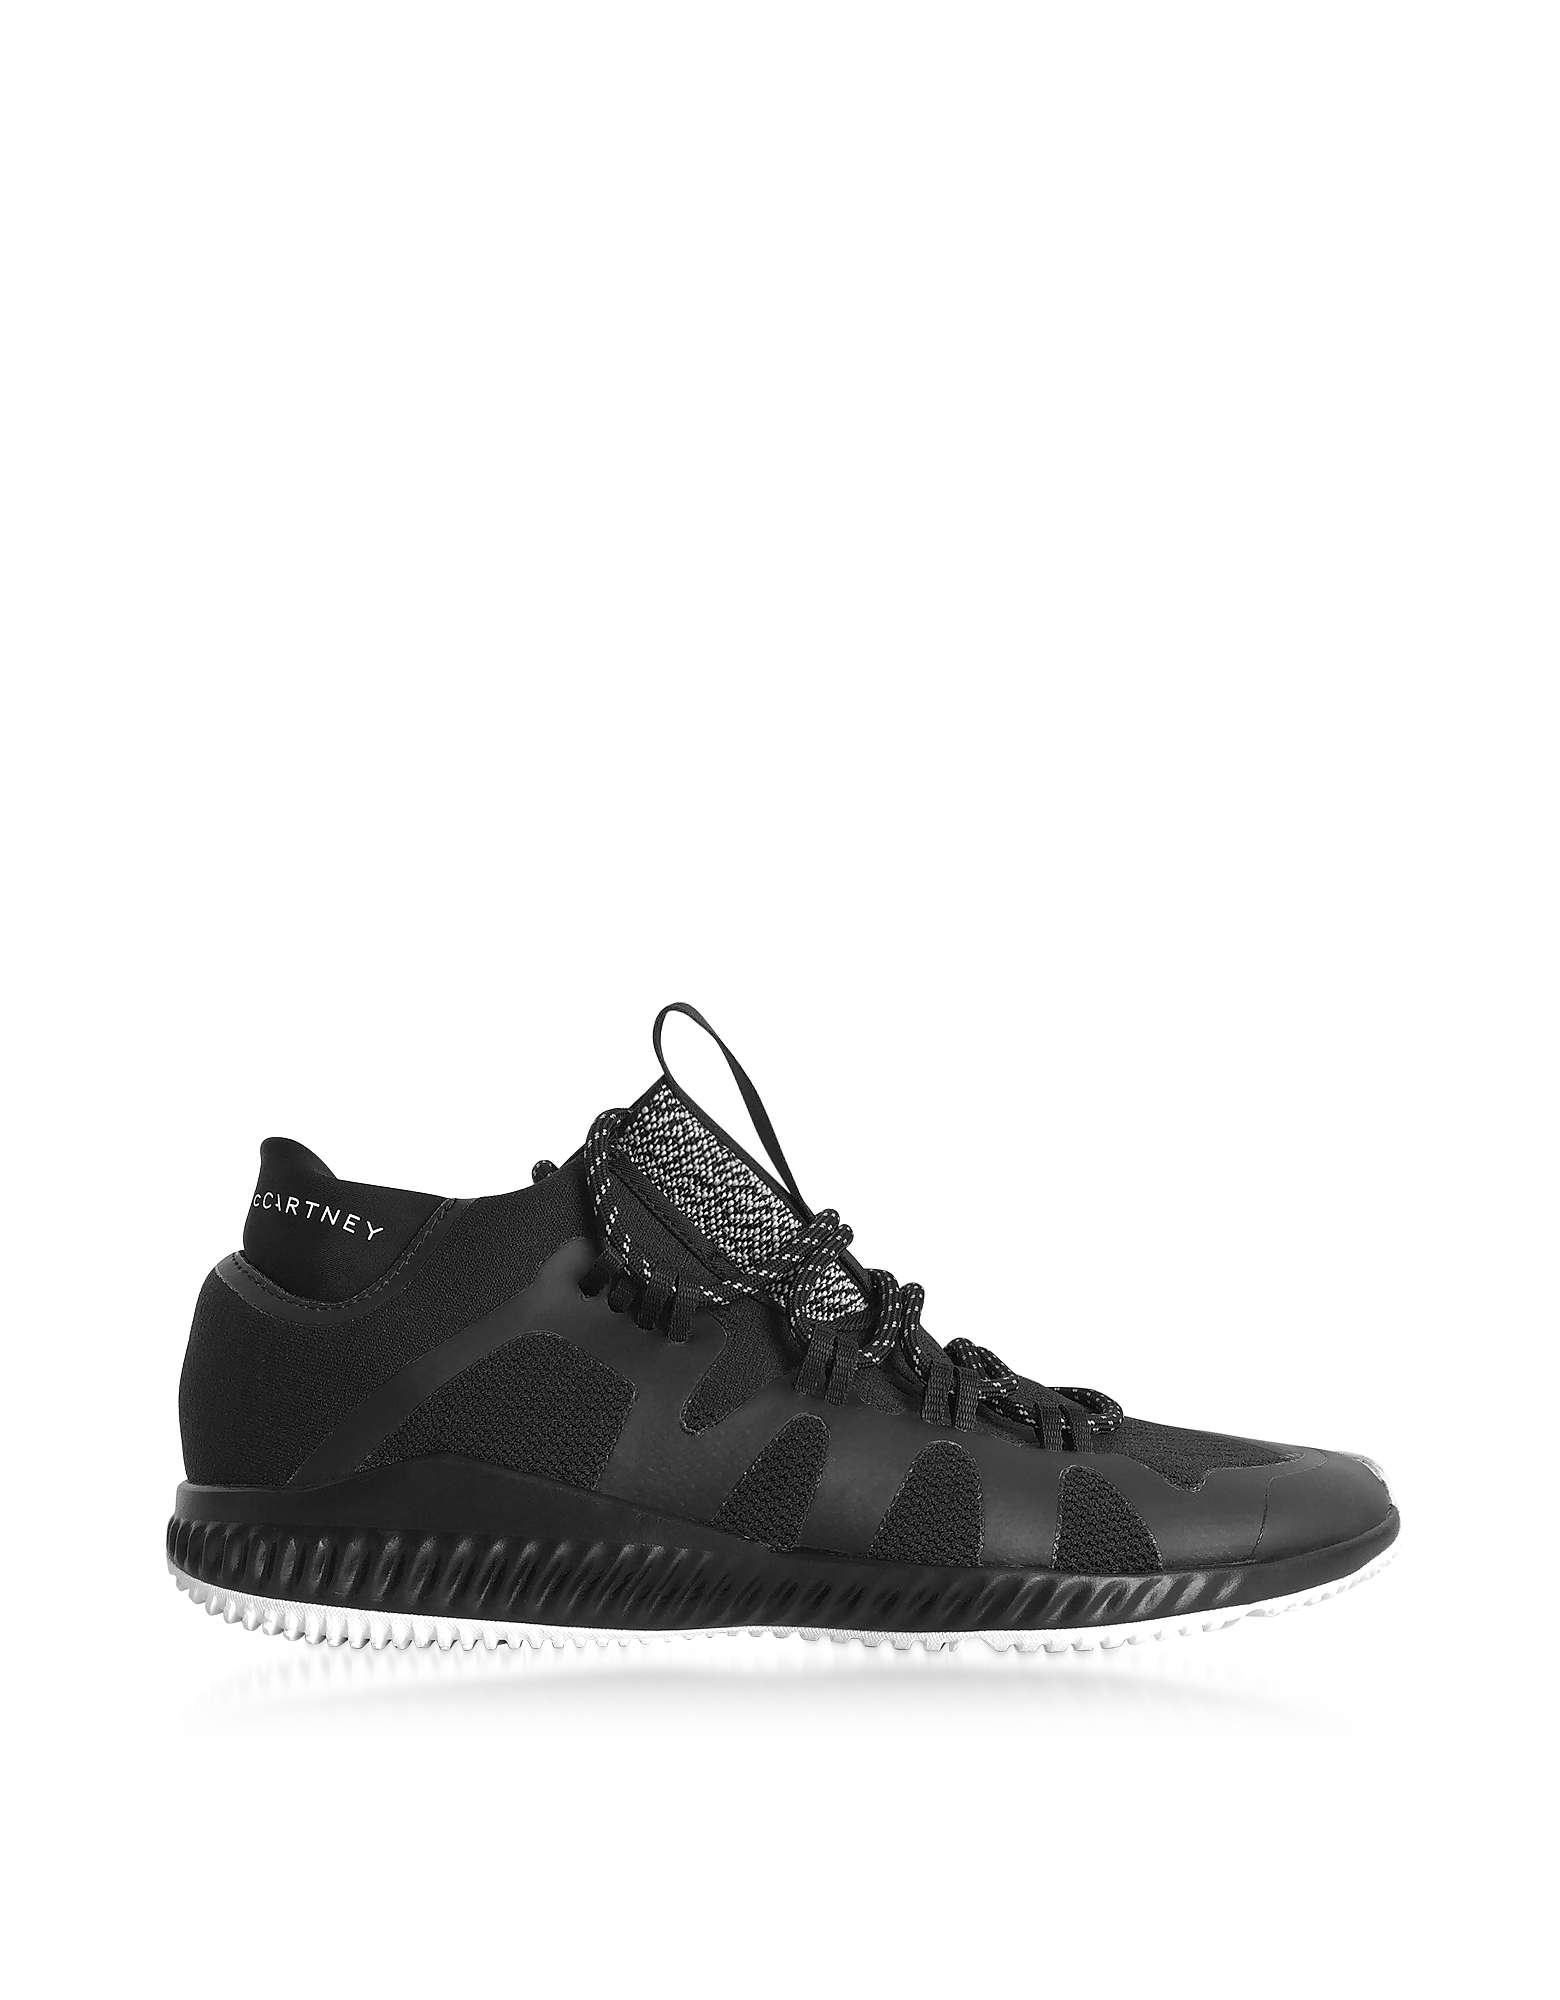 Adidas Stella McCartney Shoes, Black CrazyTrain Bounce Mid Sneakers